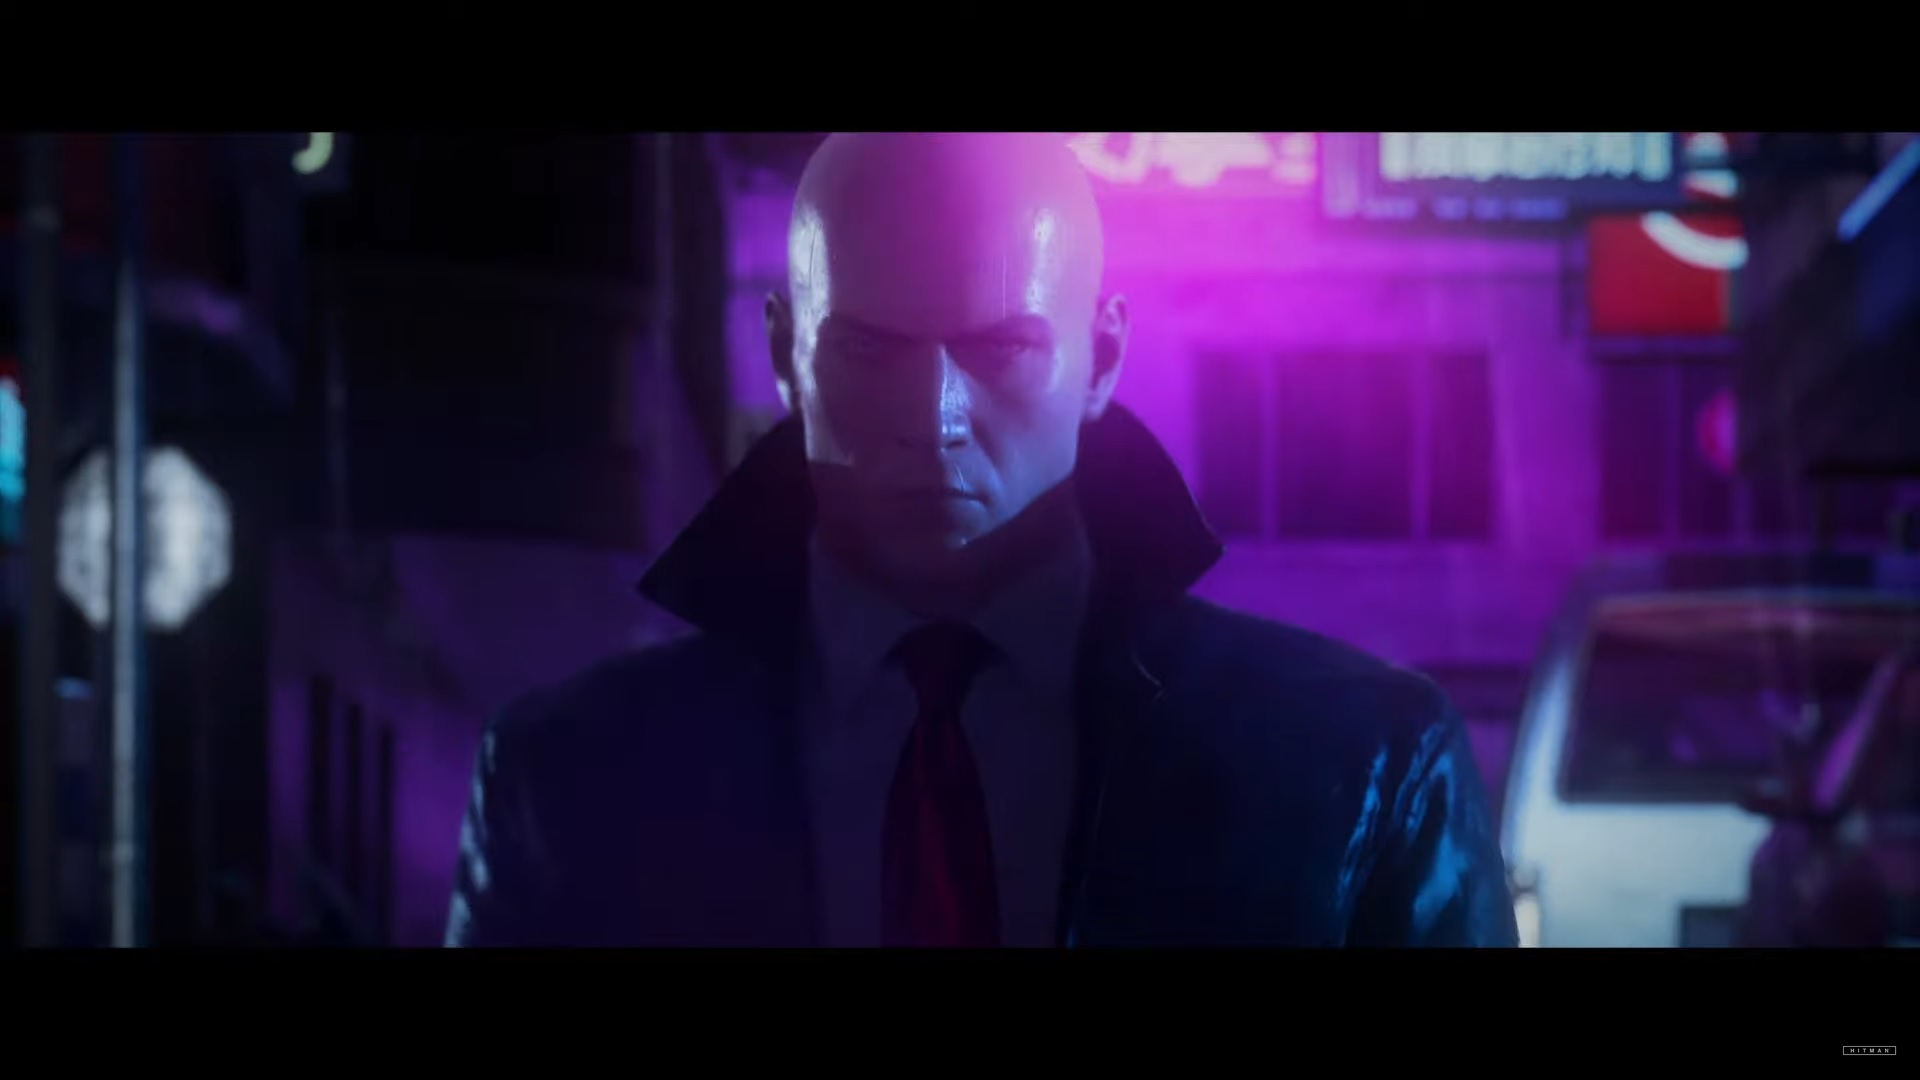 Hitman III - Cloud Version launches January 20